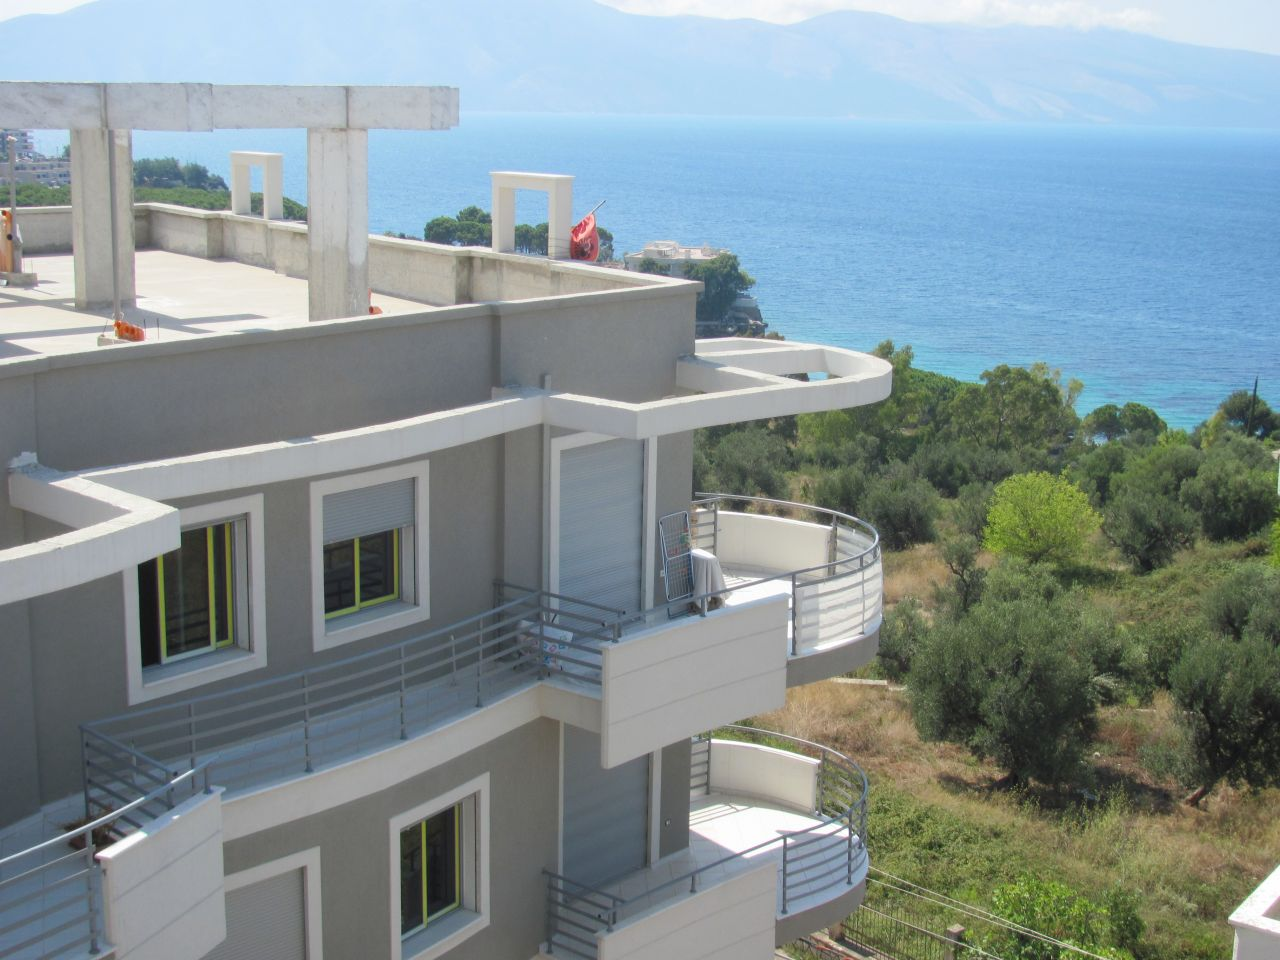 Buy Albania Property in Vlore. Apartments for Sale in Vlora